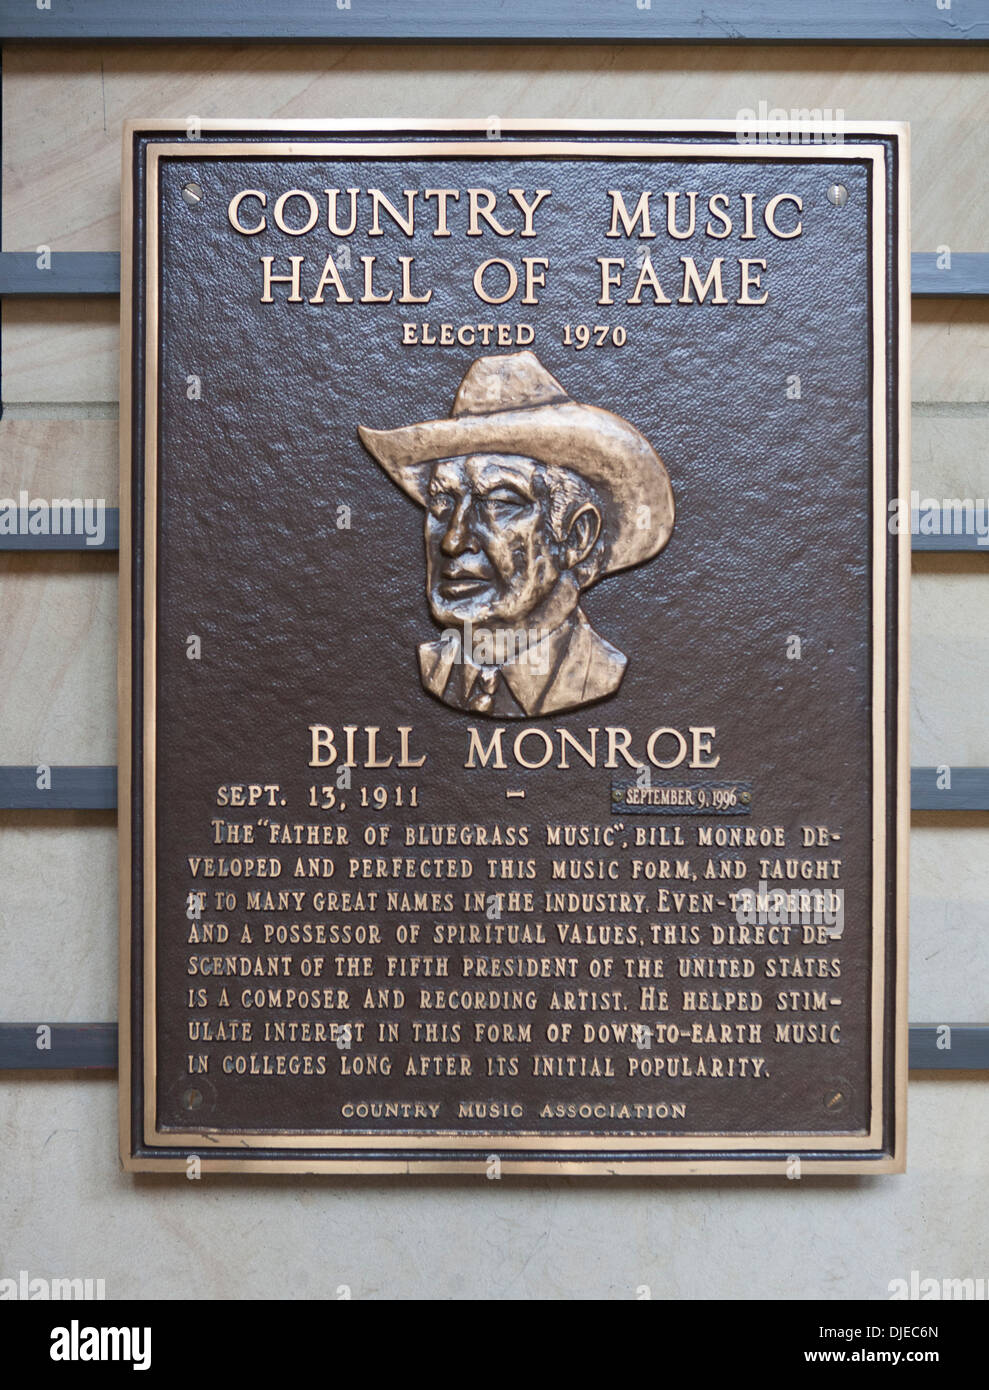 A bronze Bill Monroe Plaque inside the Country Music Hall of Fame in Nashville, TN, USA. Bill was a descendant of 5th president. - Stock Image